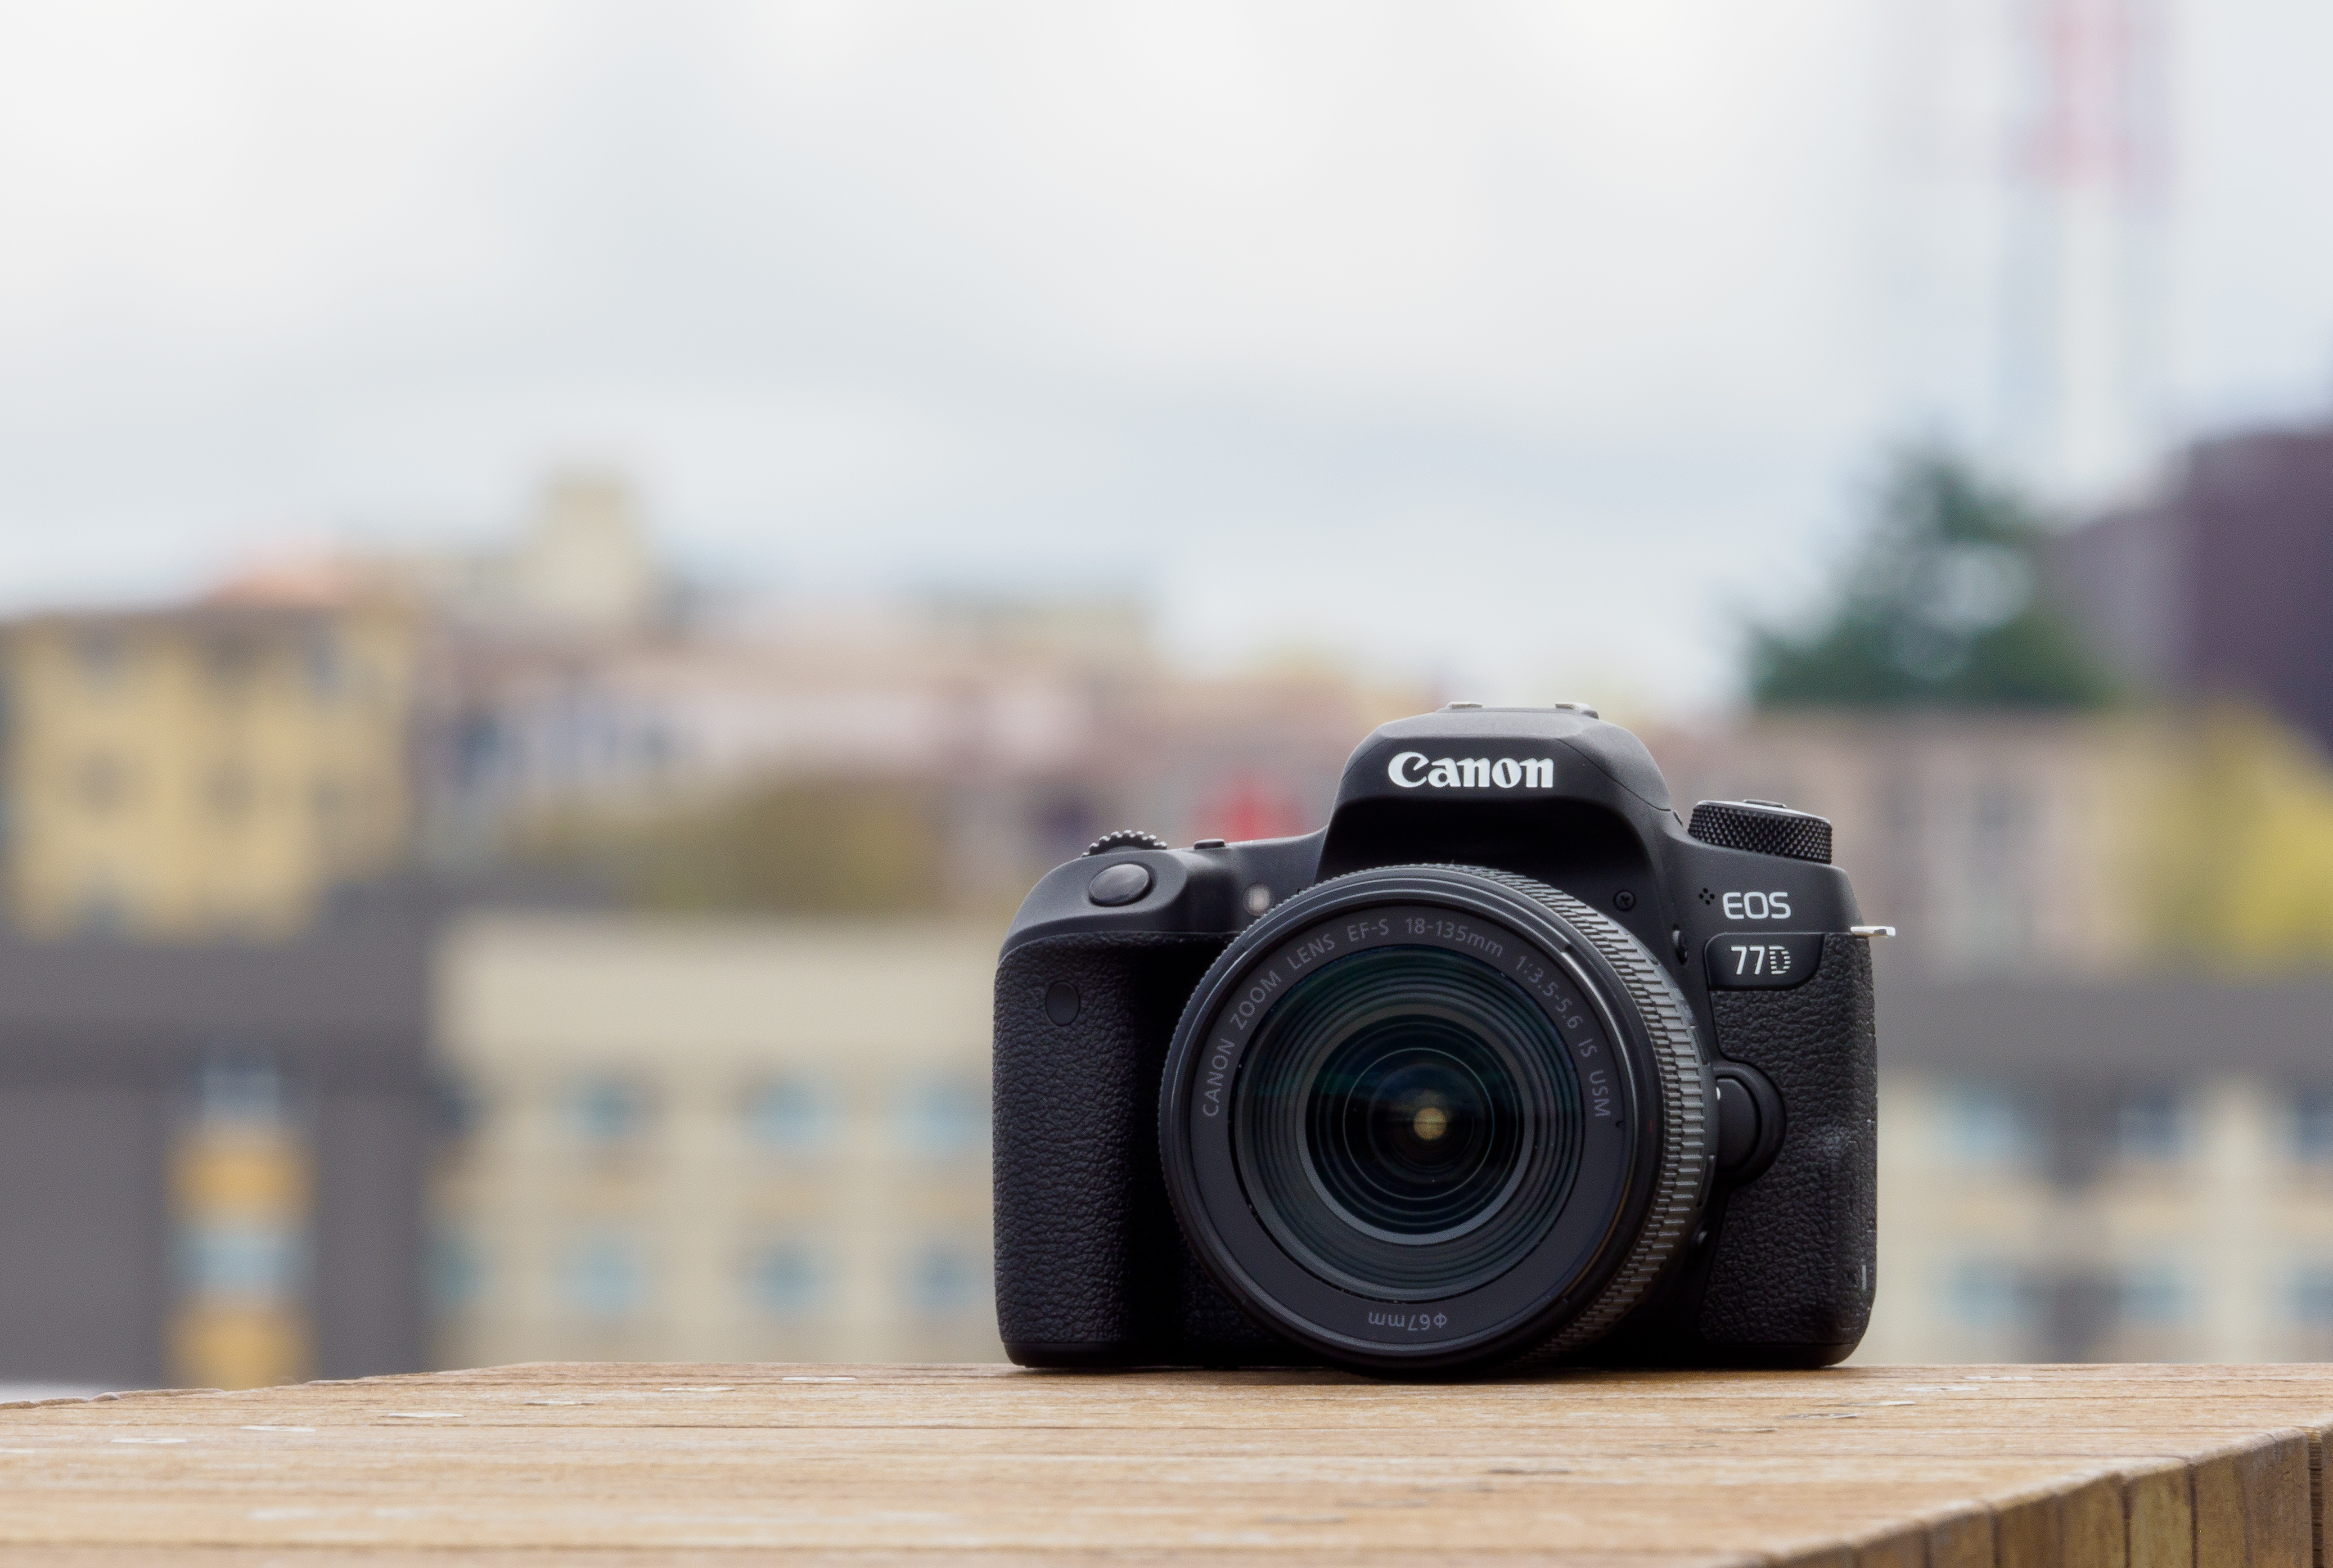 Canon Eos 77d Review Digital Photography 760d Body Only Wifi